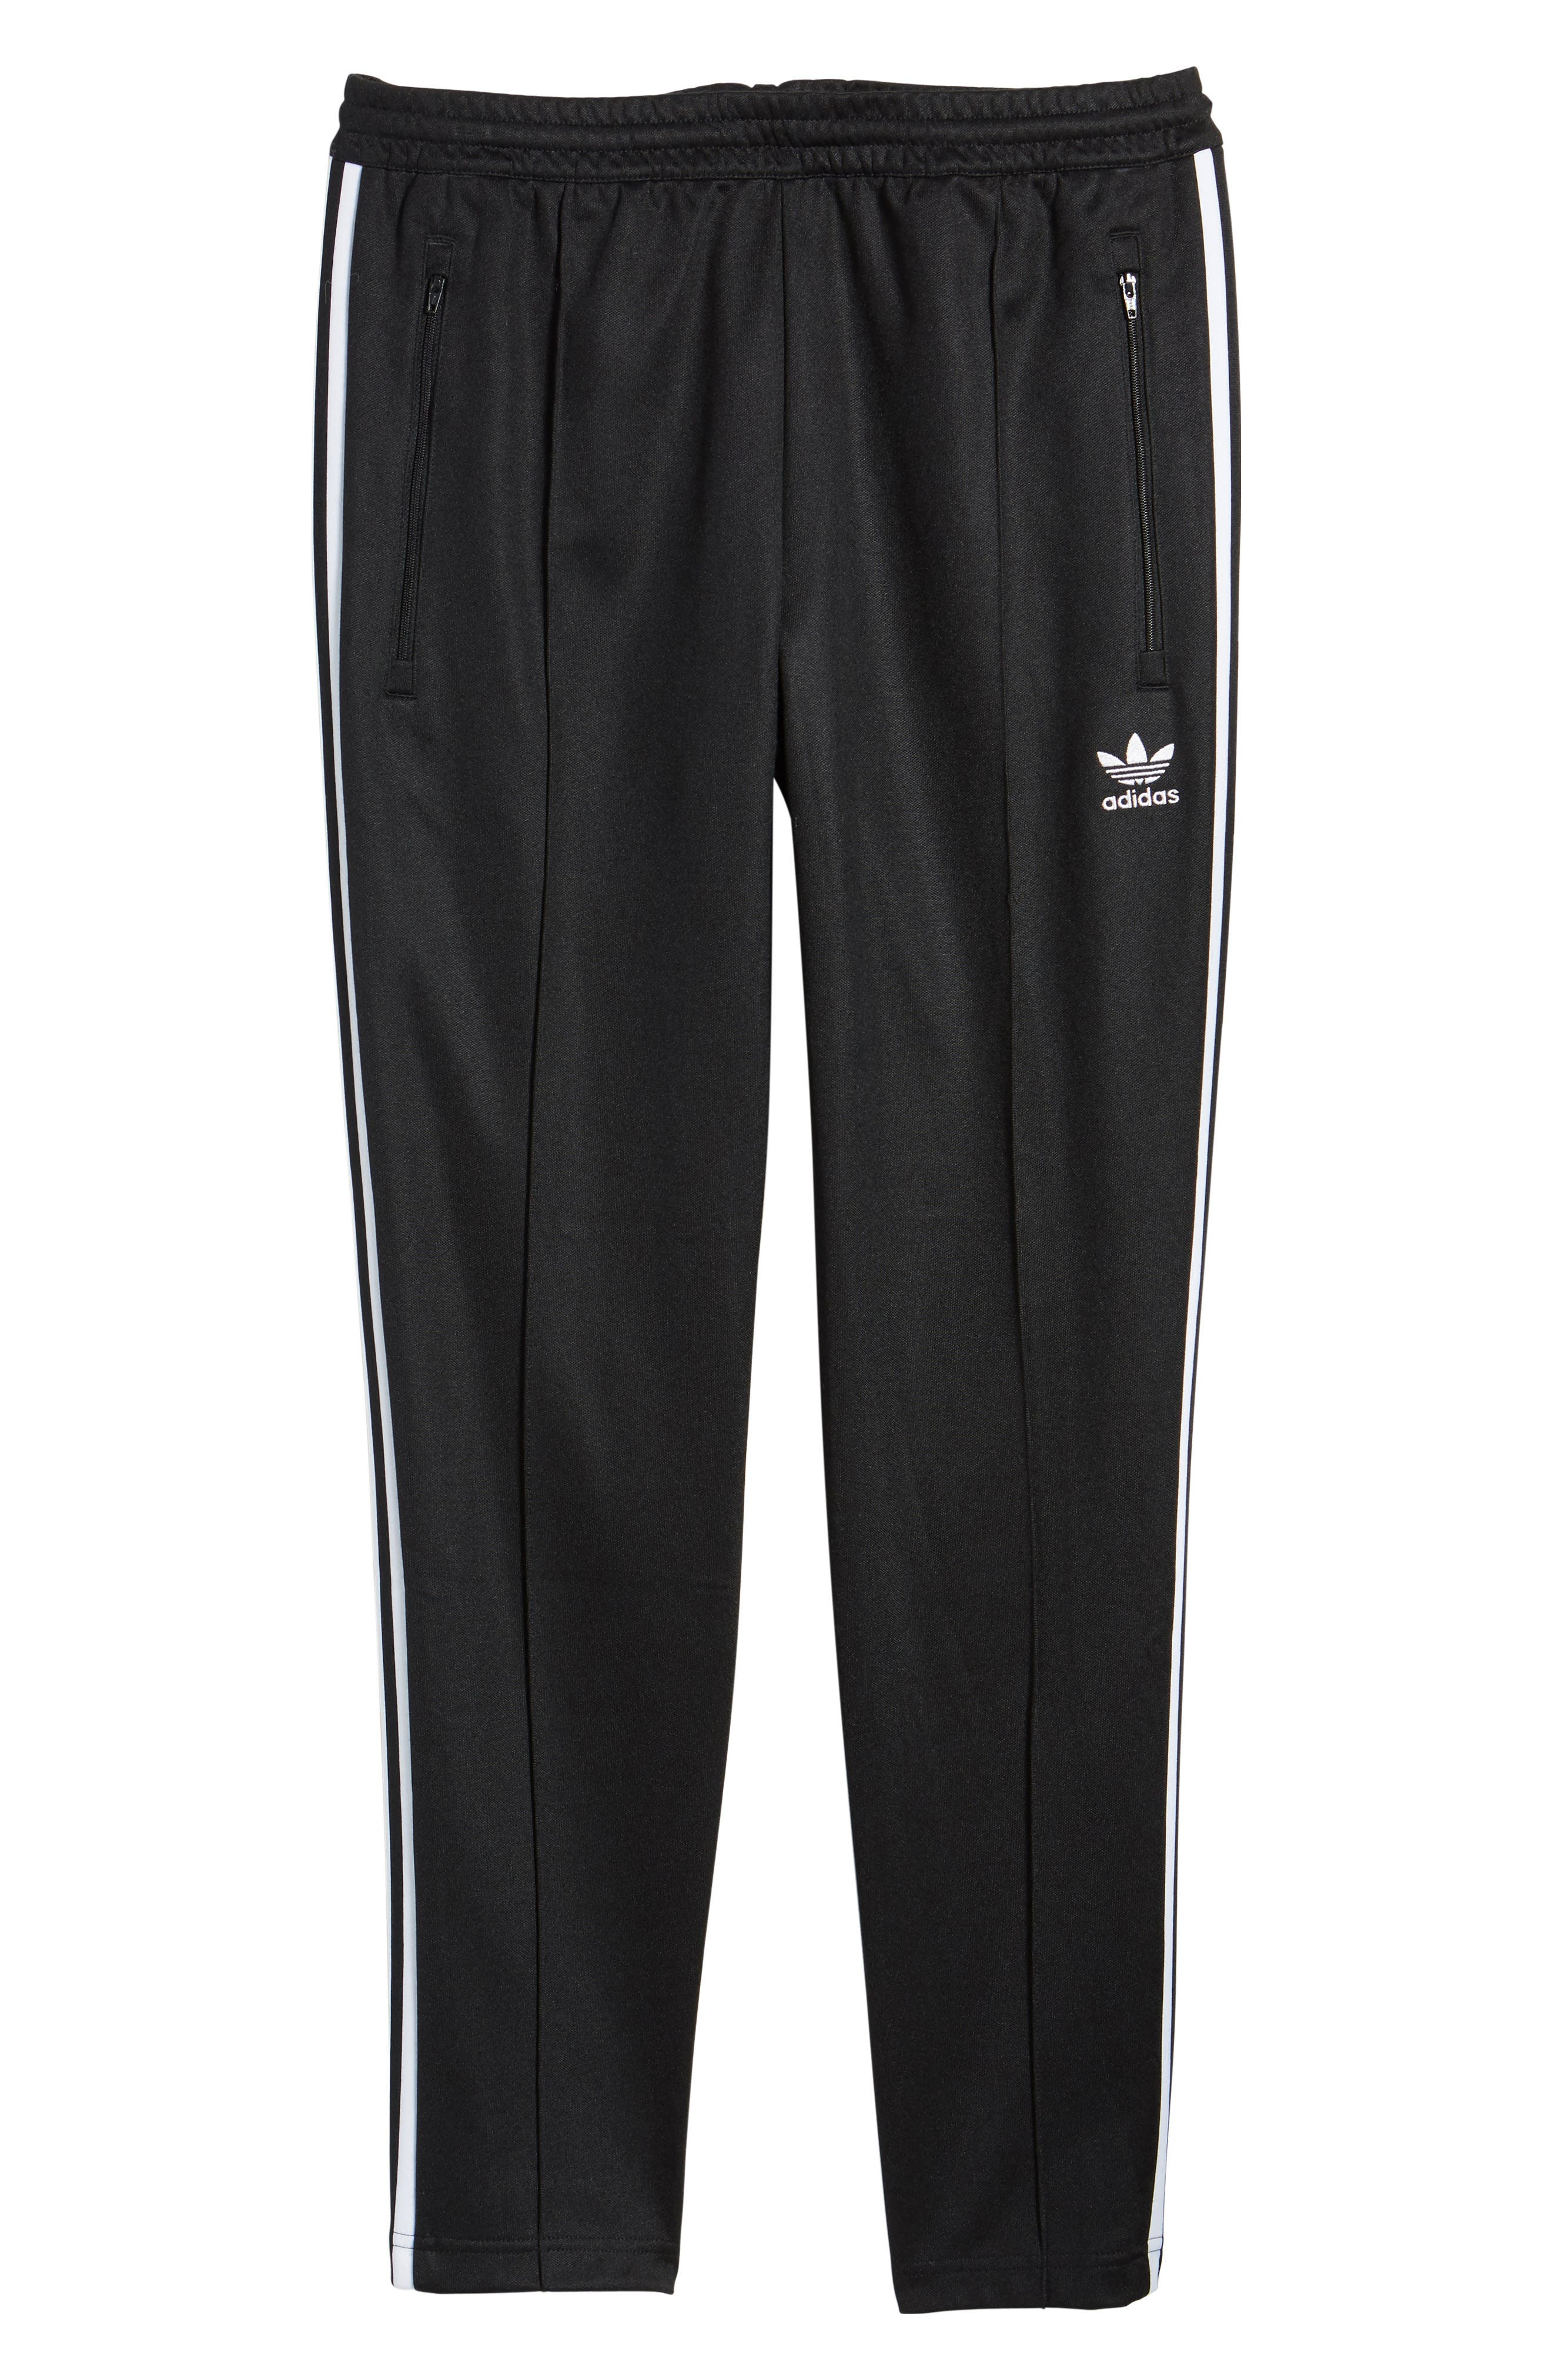 Beckenbauer Track Pants,                             Alternate thumbnail 5, color,                             BLACK/ WHITE